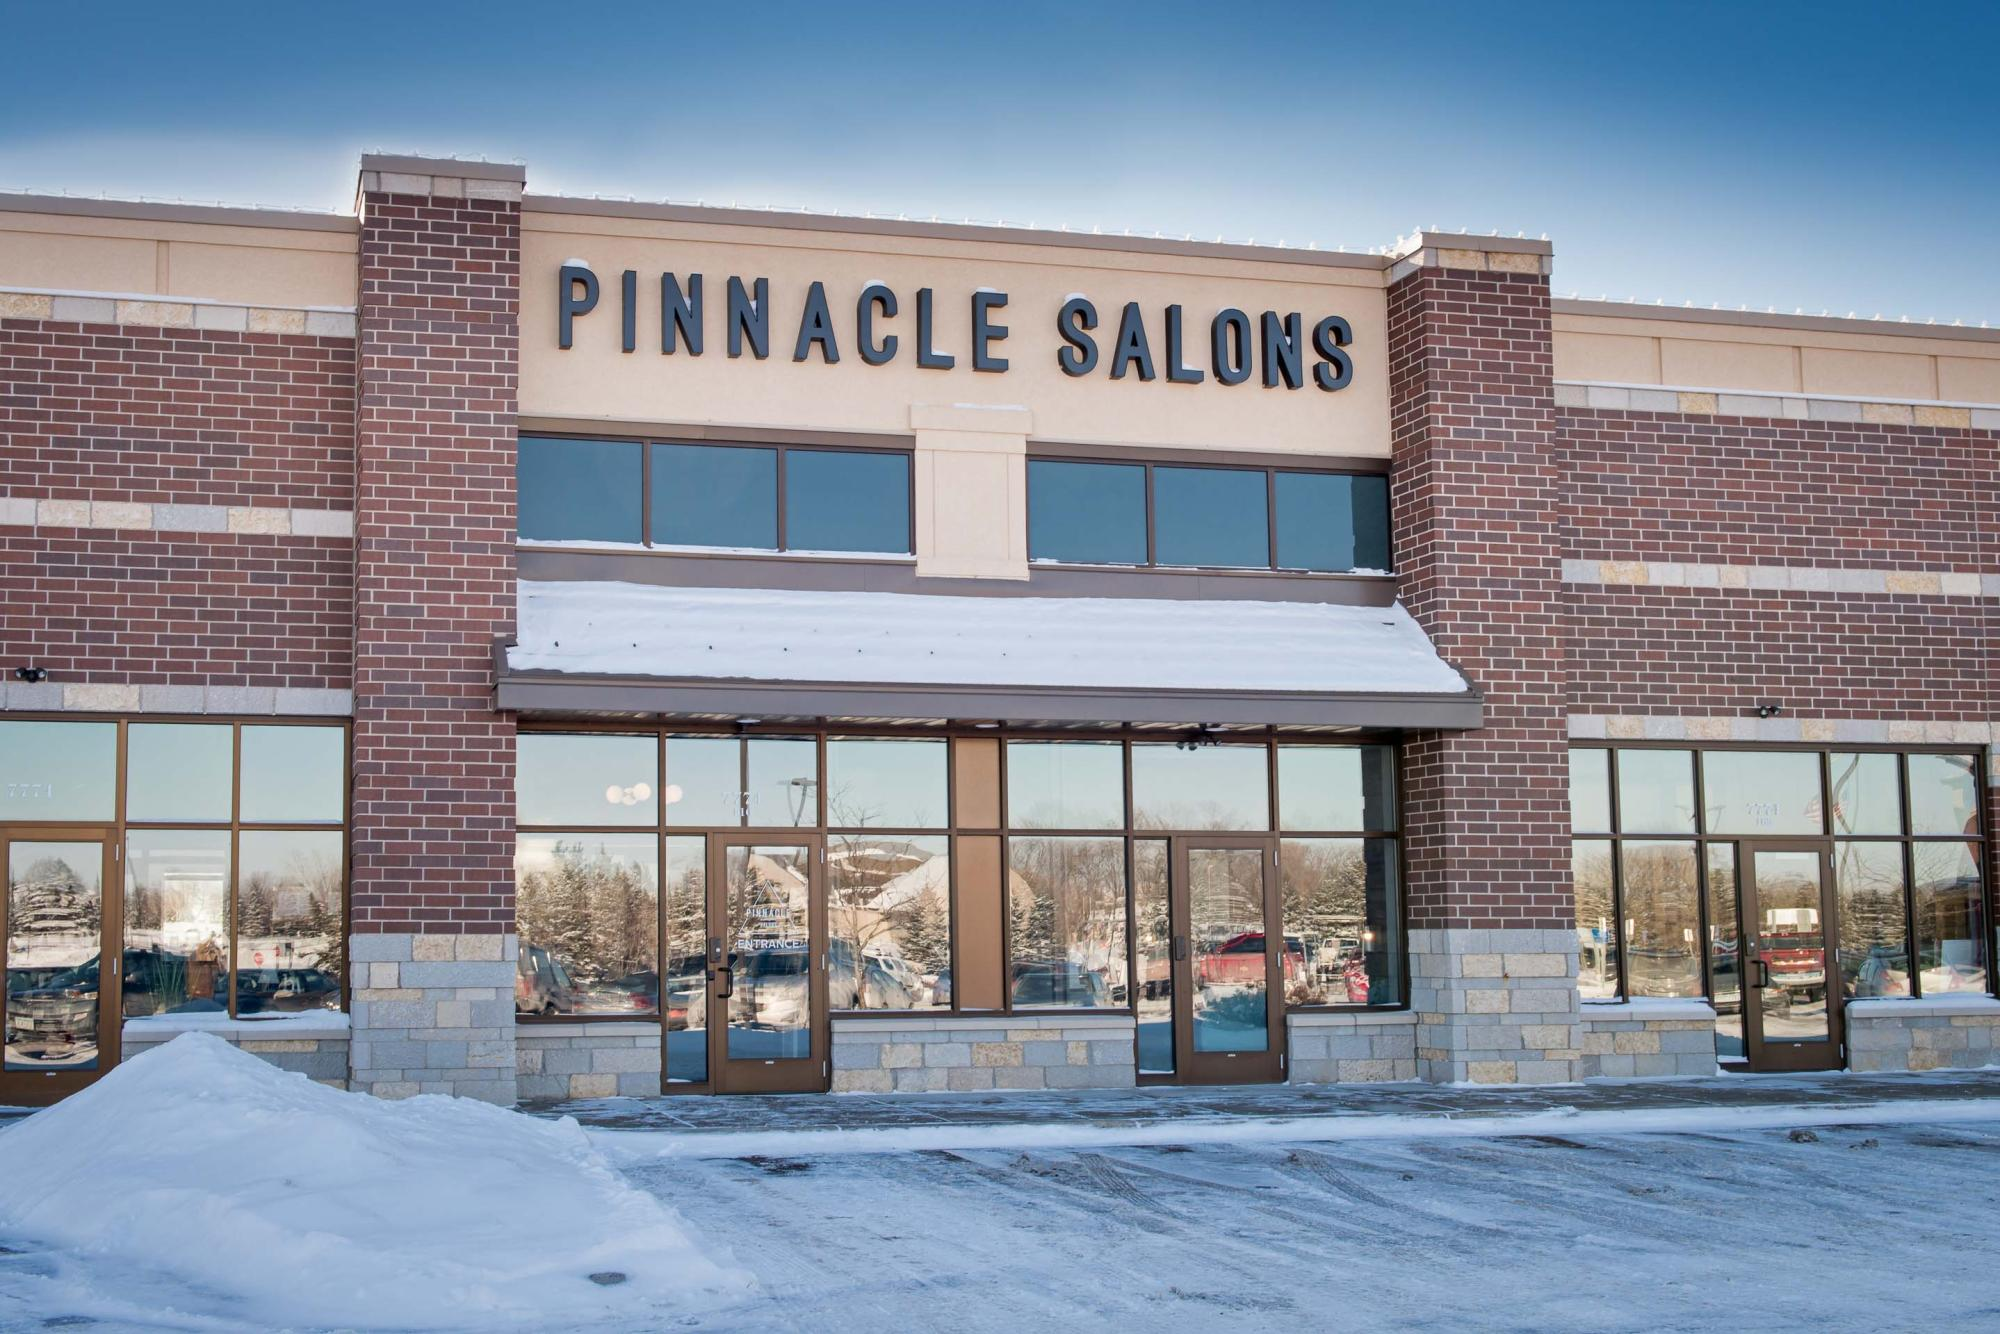 PinnacleSalons20180116Web-15.jpg